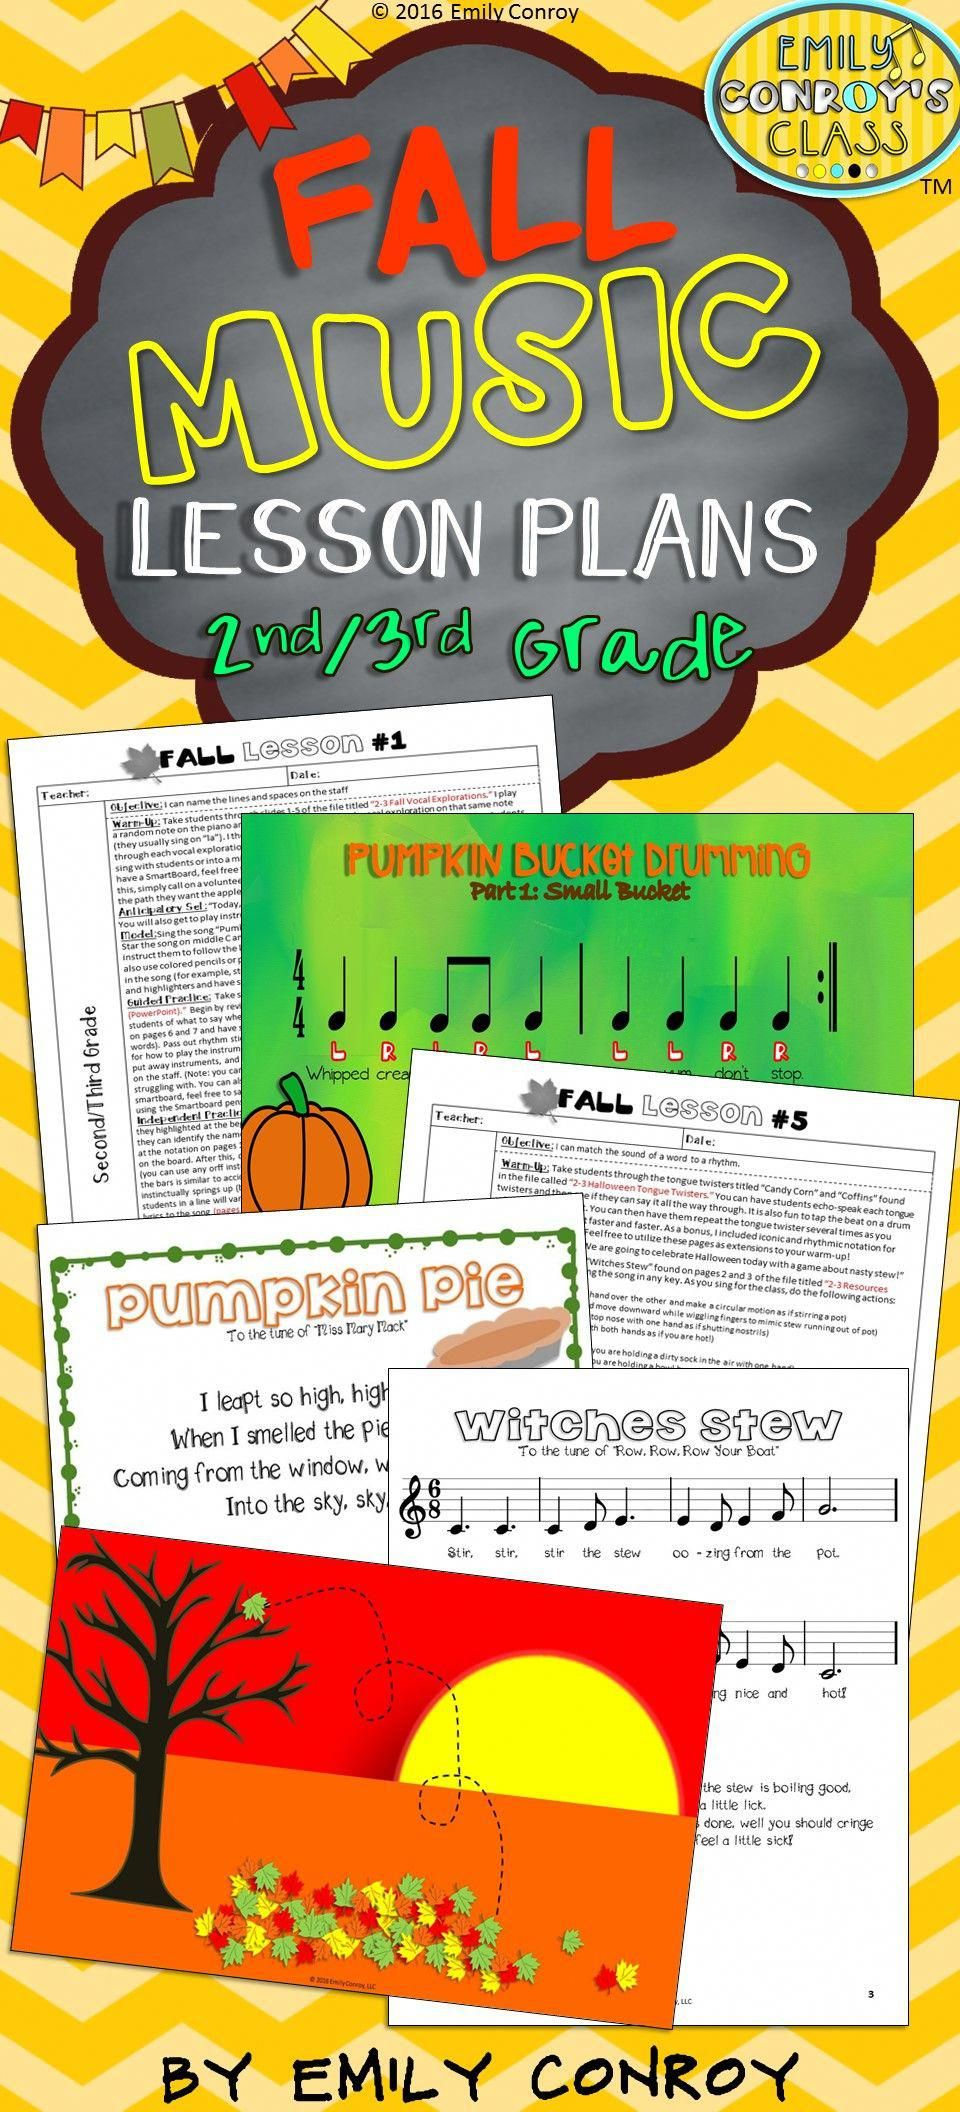 These lessons include fallthemed music lesson plans for second or